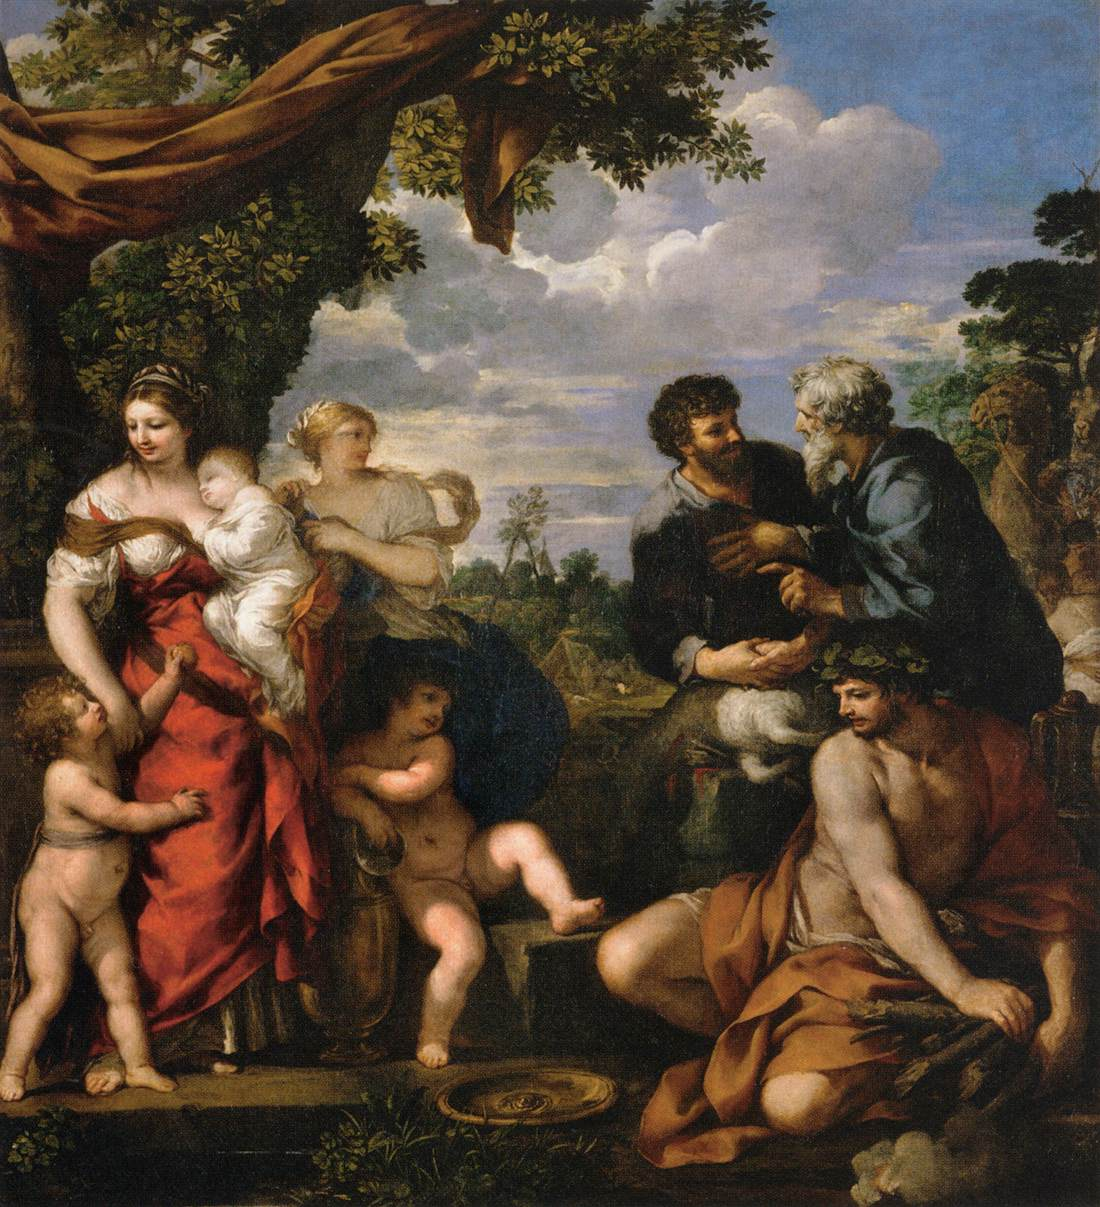 Pietro da Cortona 1630–35 Alliance_of_Jacob_and_Laban Louvre